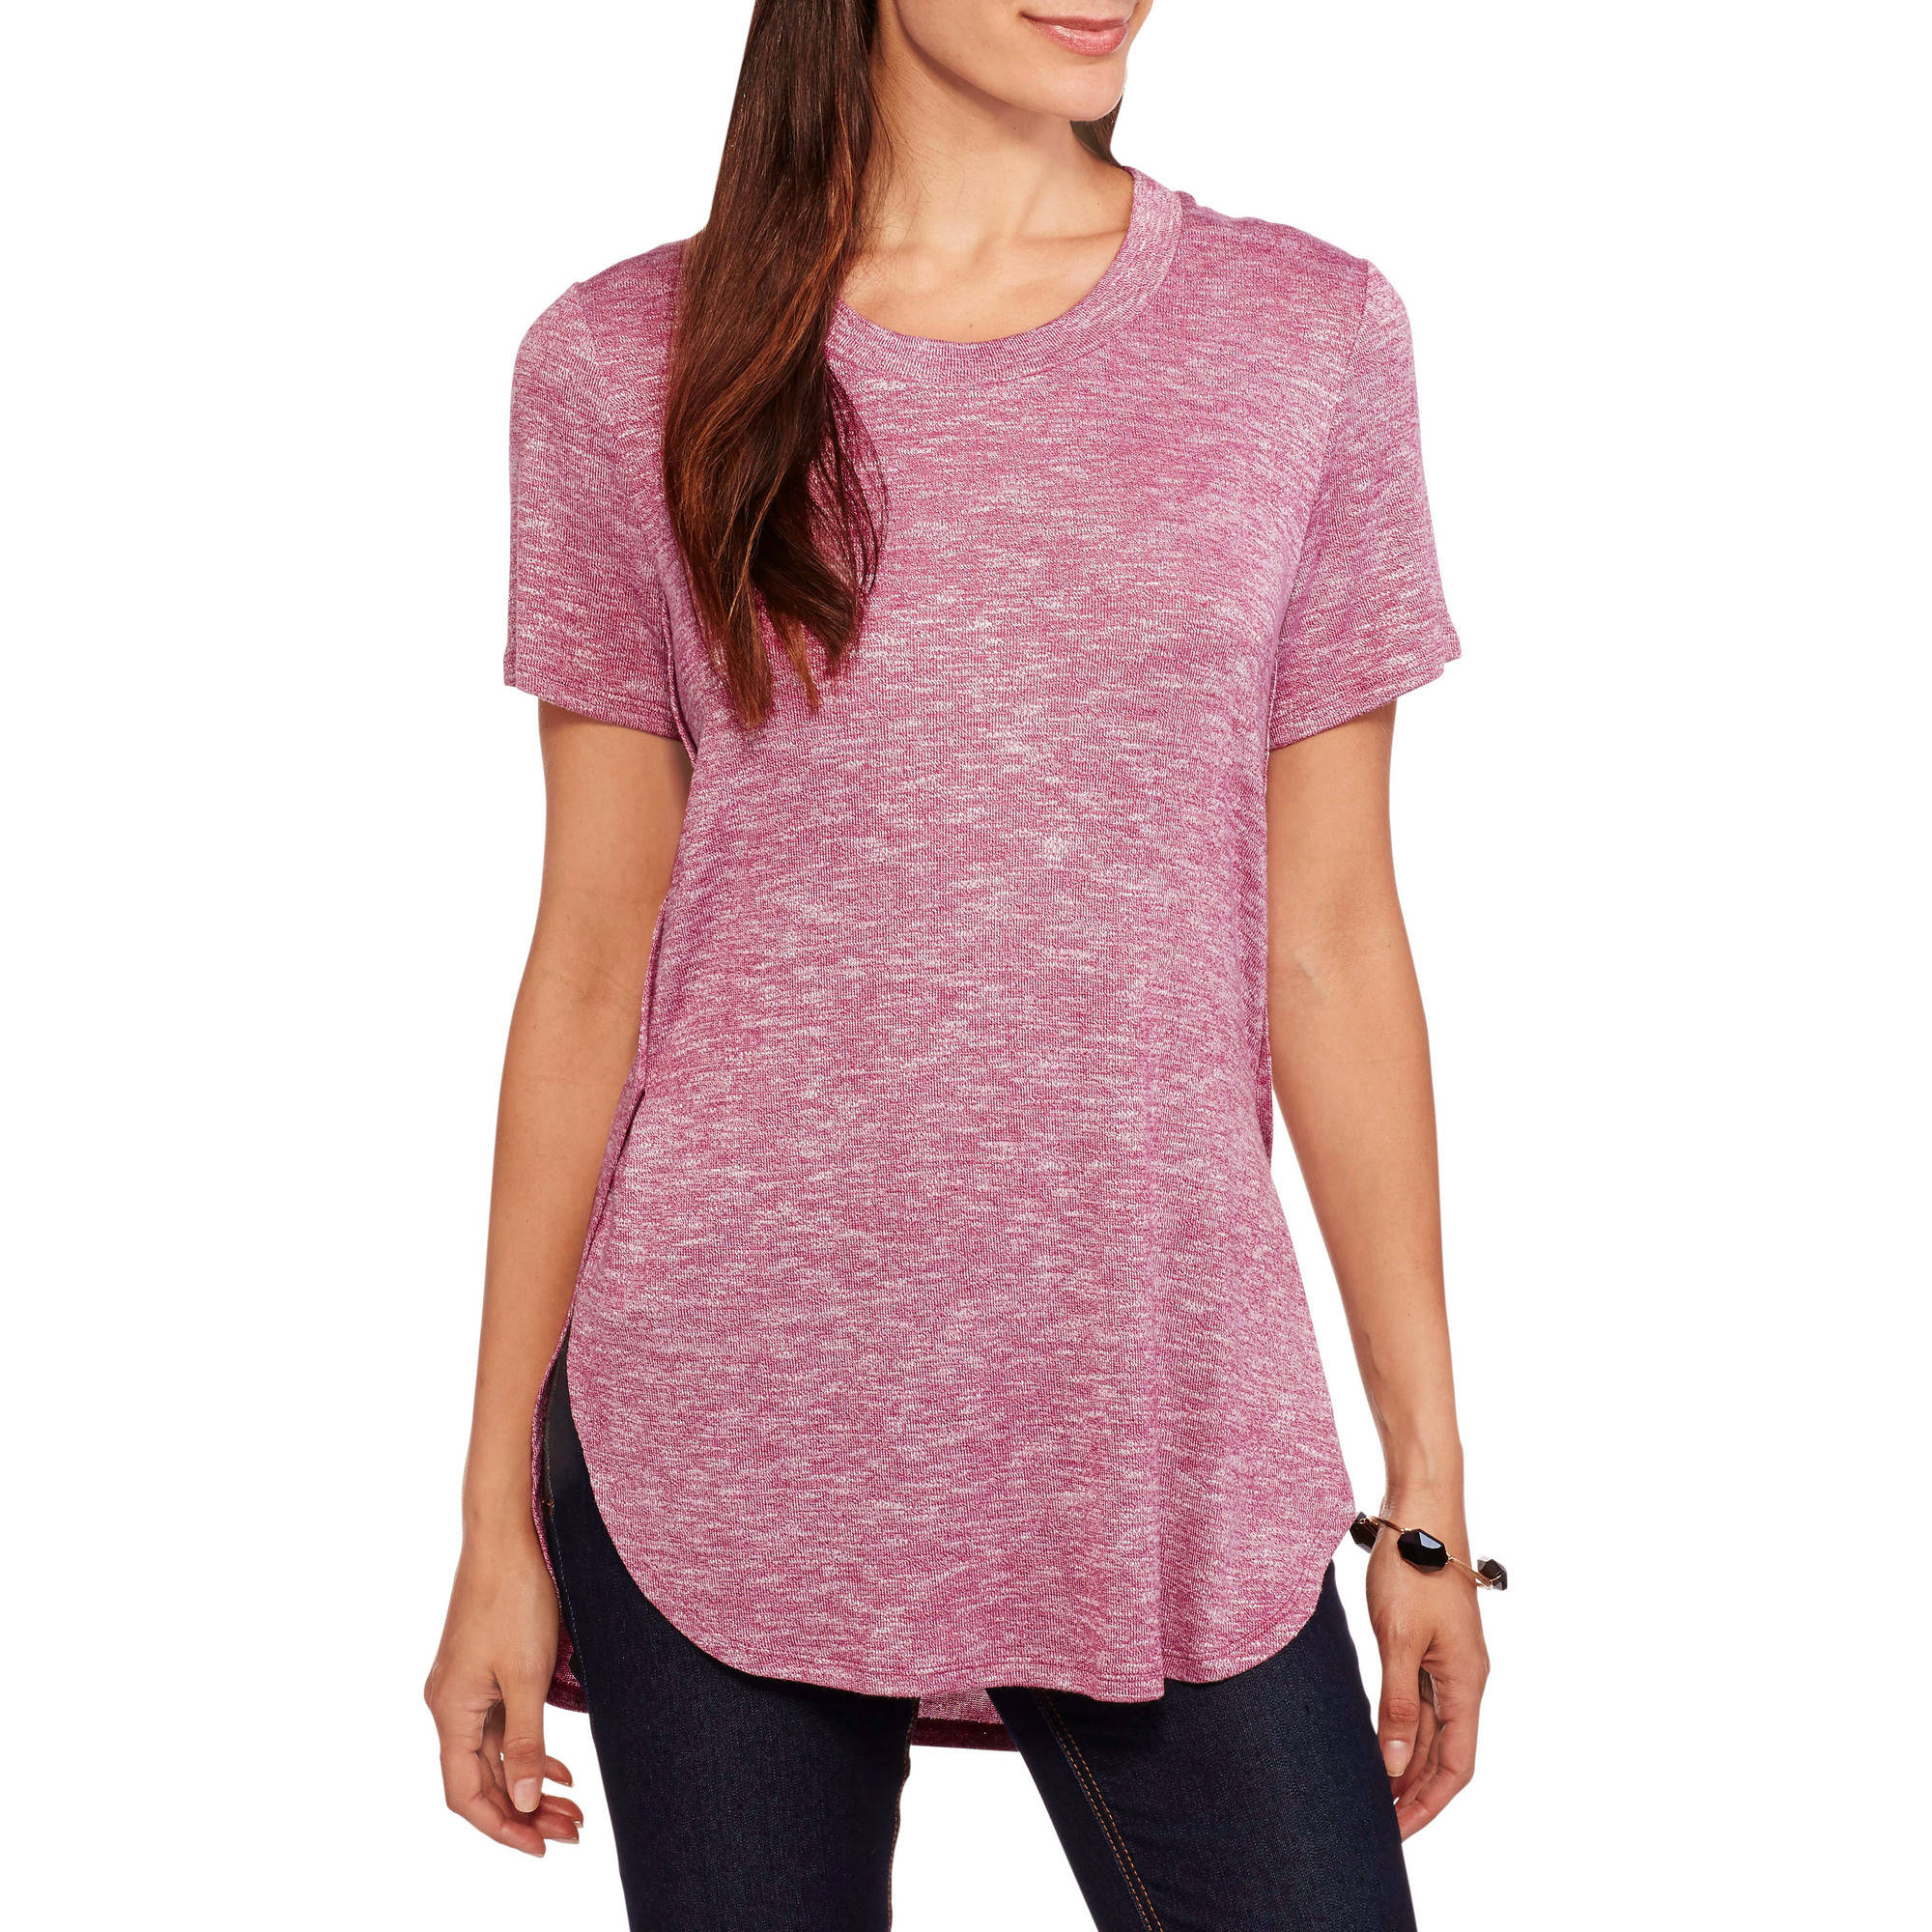 Faded Glory Women's Textured Tunic Top